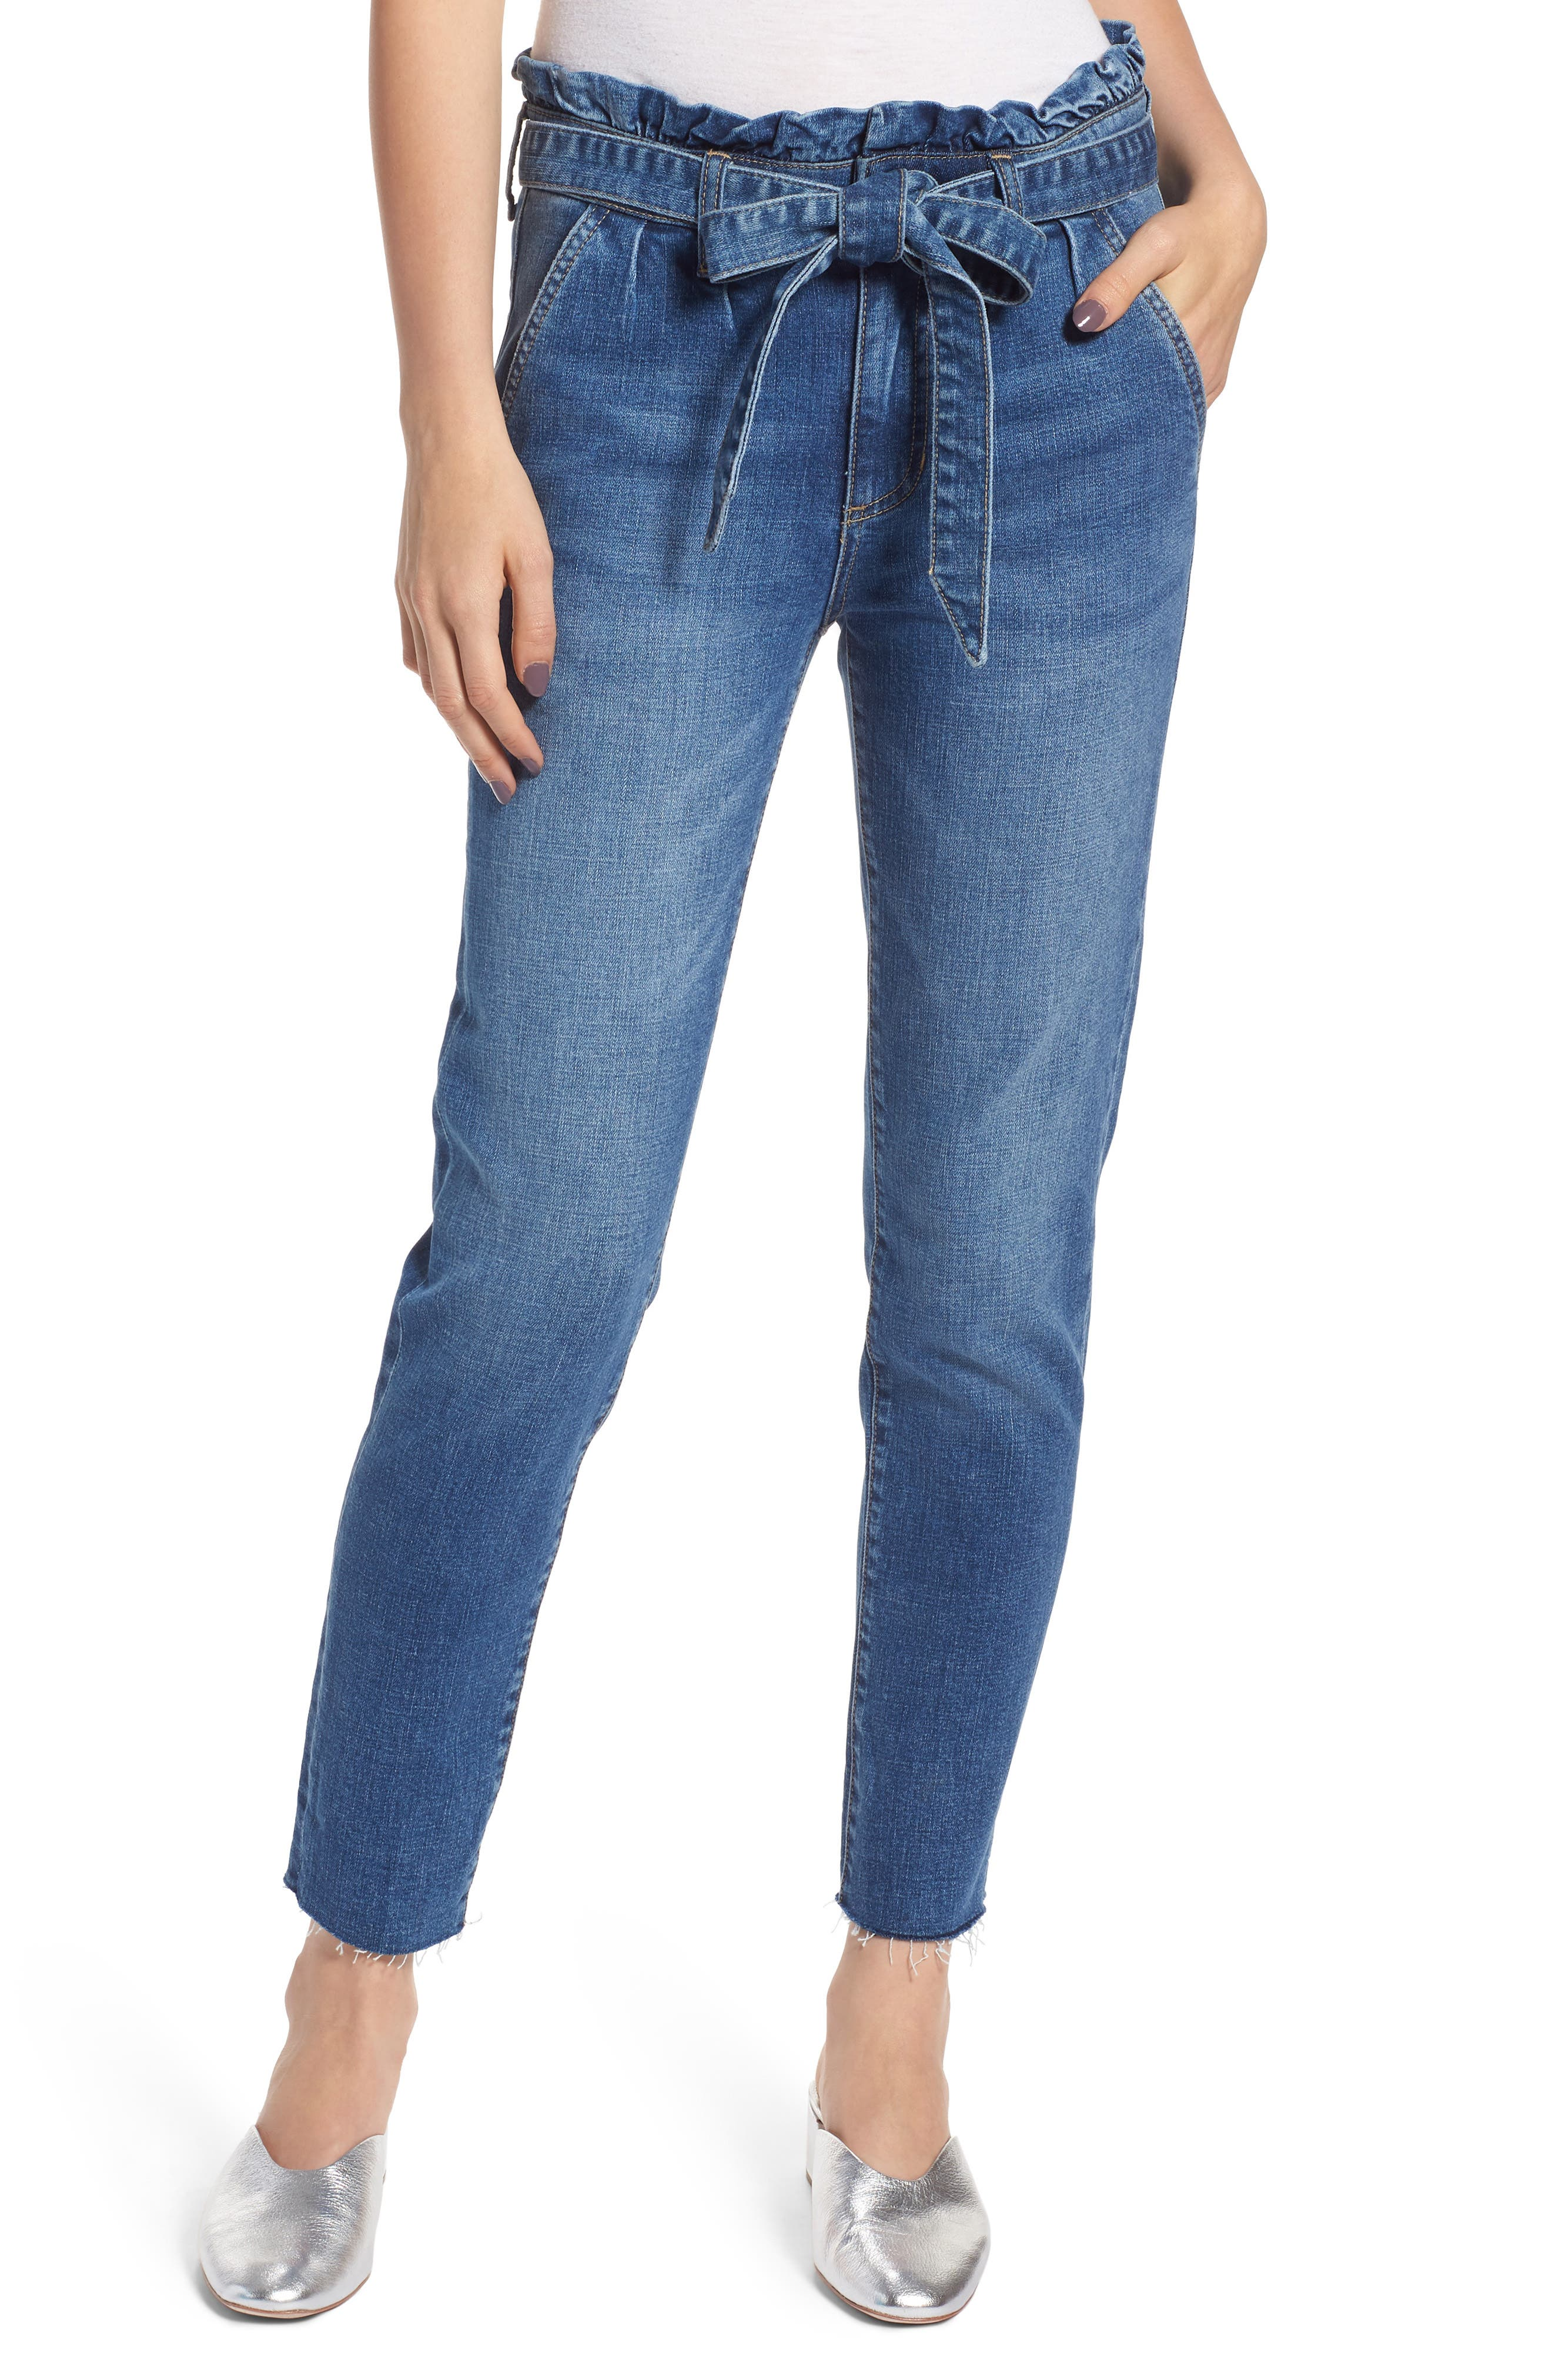 Paperbag Waist Skinny Jeans,                             Main thumbnail 1, color,                             PRETTY